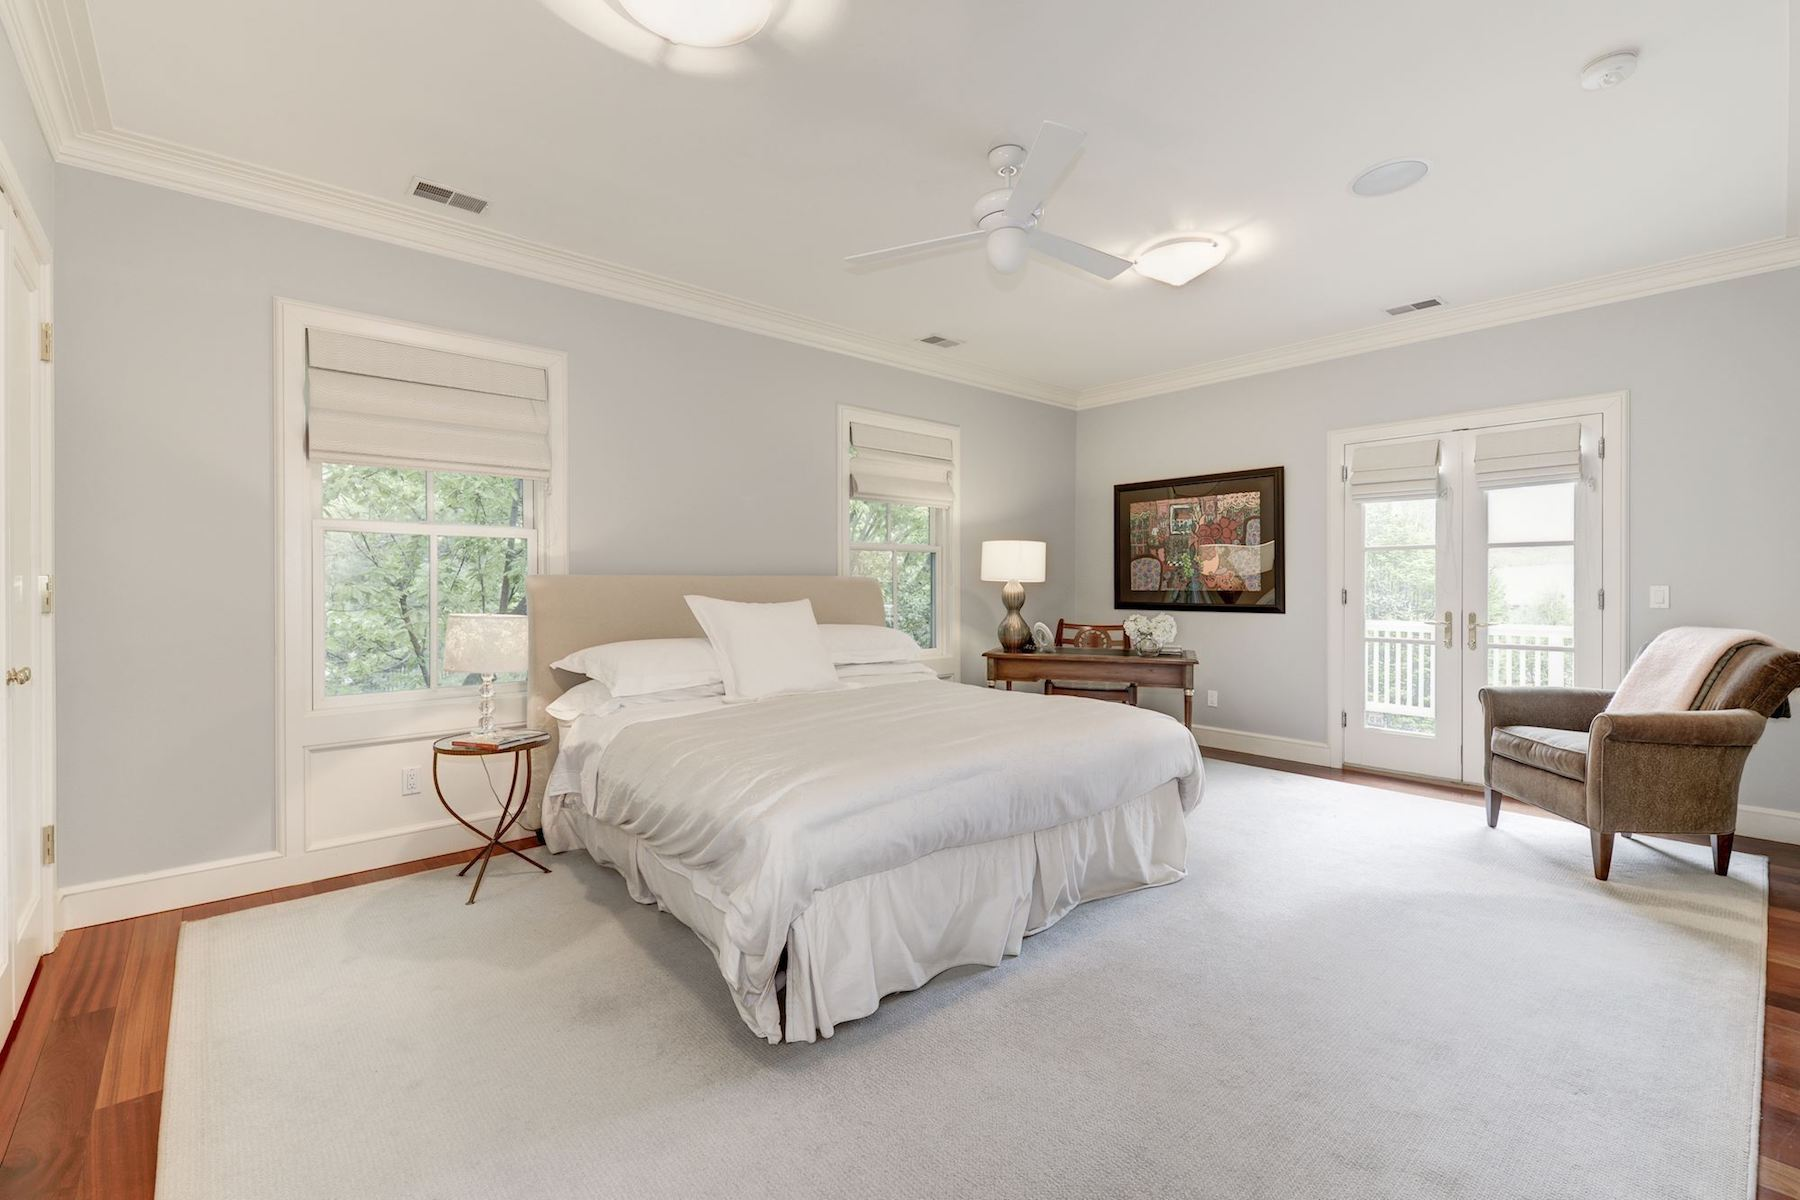 Additional photo for property listing at Cleveland Park 3124 38th Street Nw Washington, District Of Columbia 20016 United States